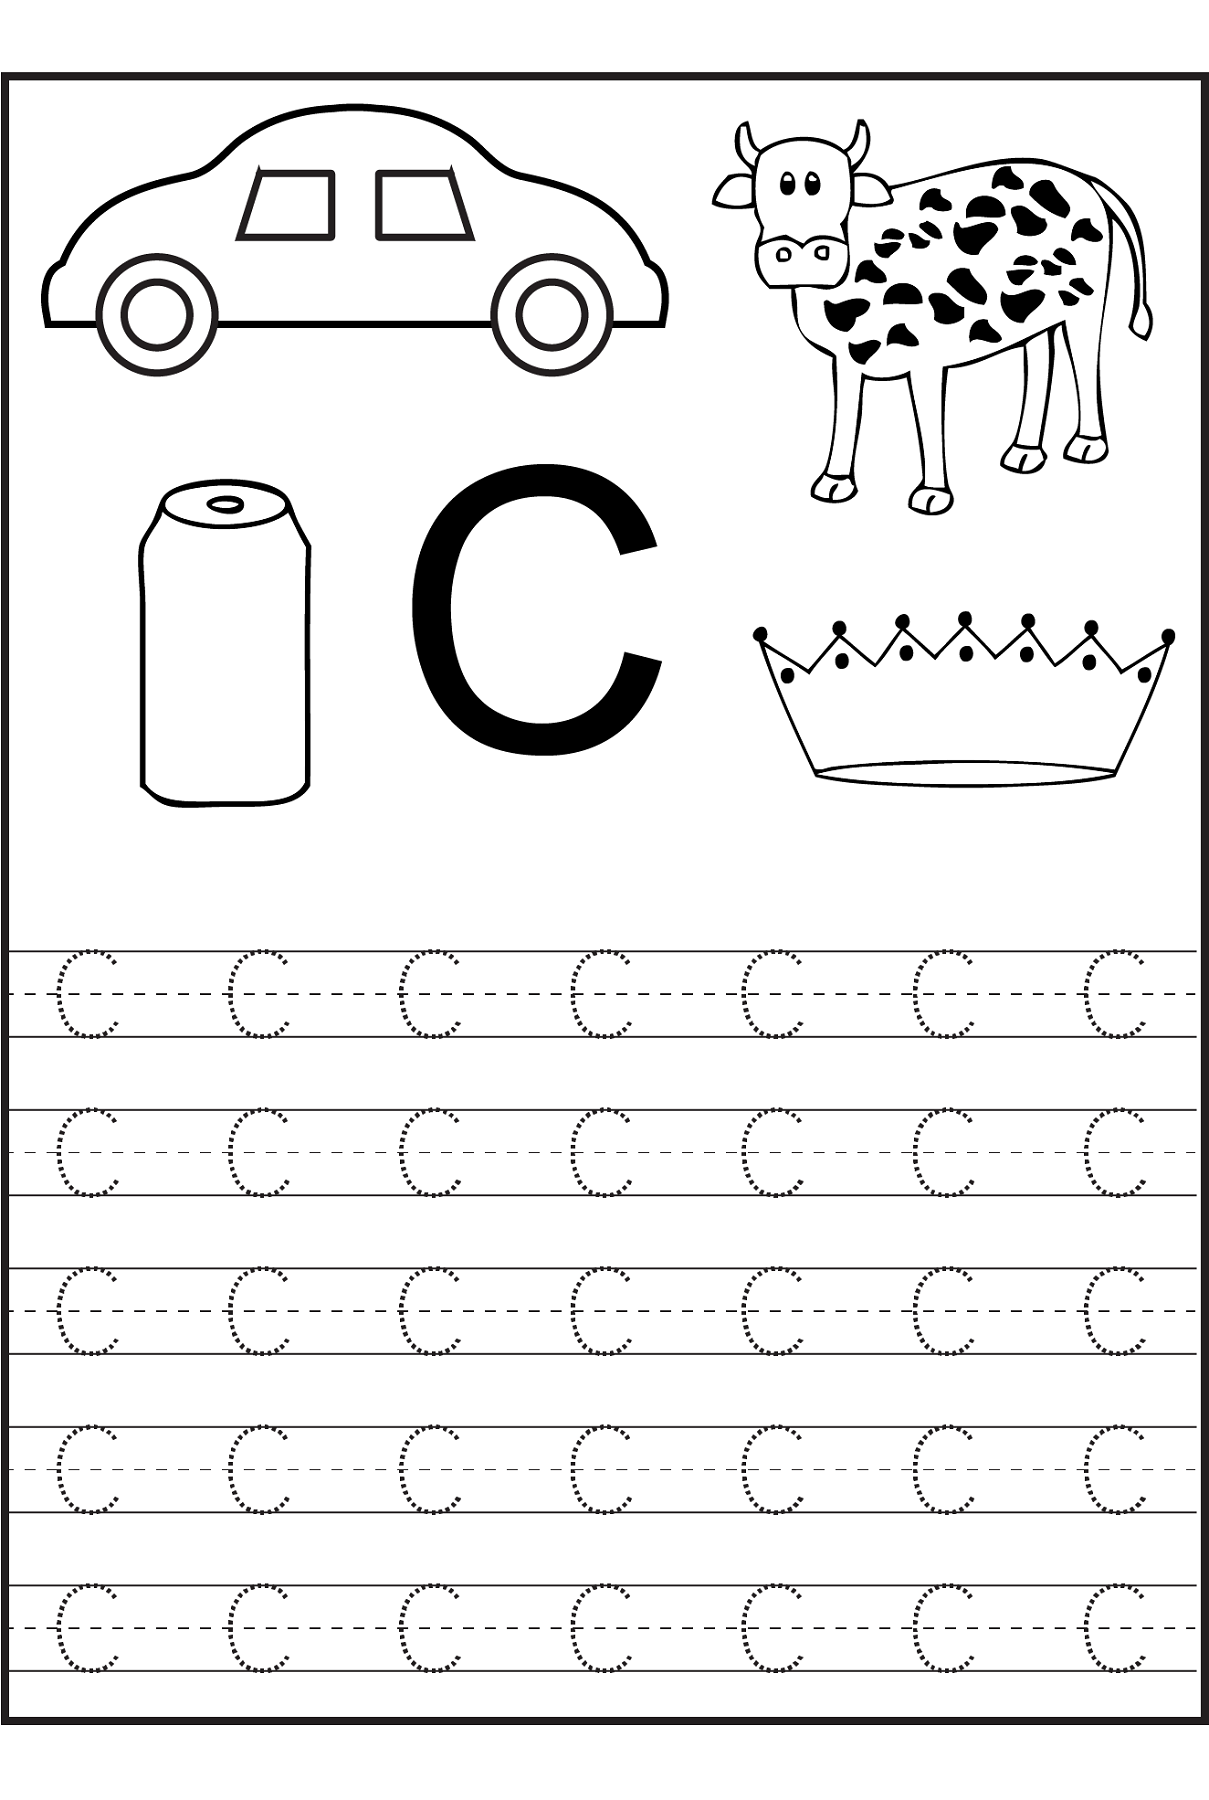 Trace The Letter C Worksheets Preschool Worksheets Letter C within Letter C Tracing Worksheets Pdf